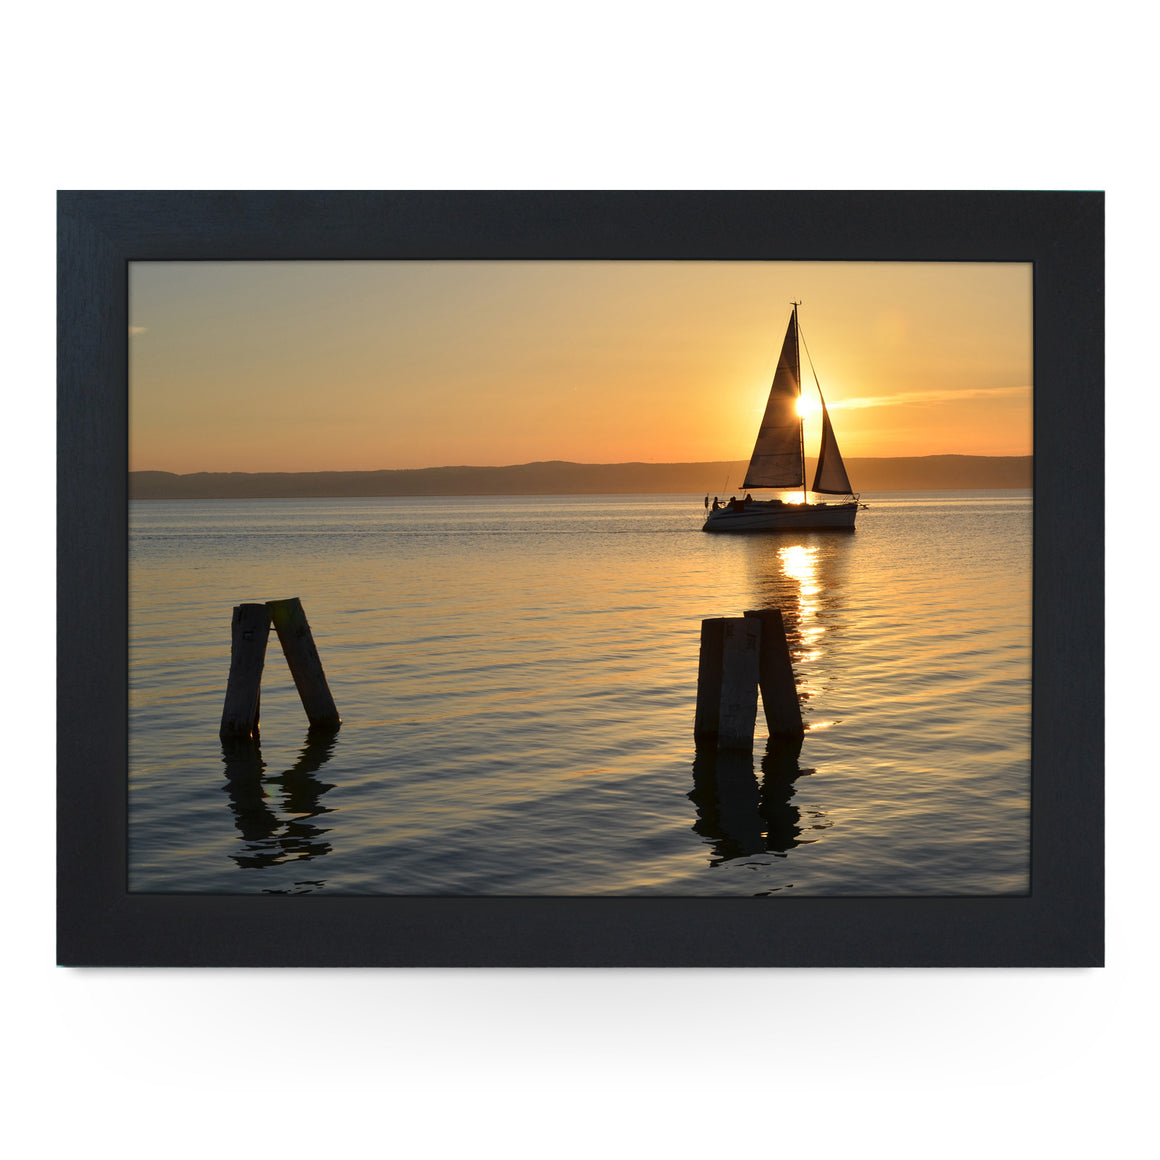 Sailing Boat at Sunset Lap Tray - L0193